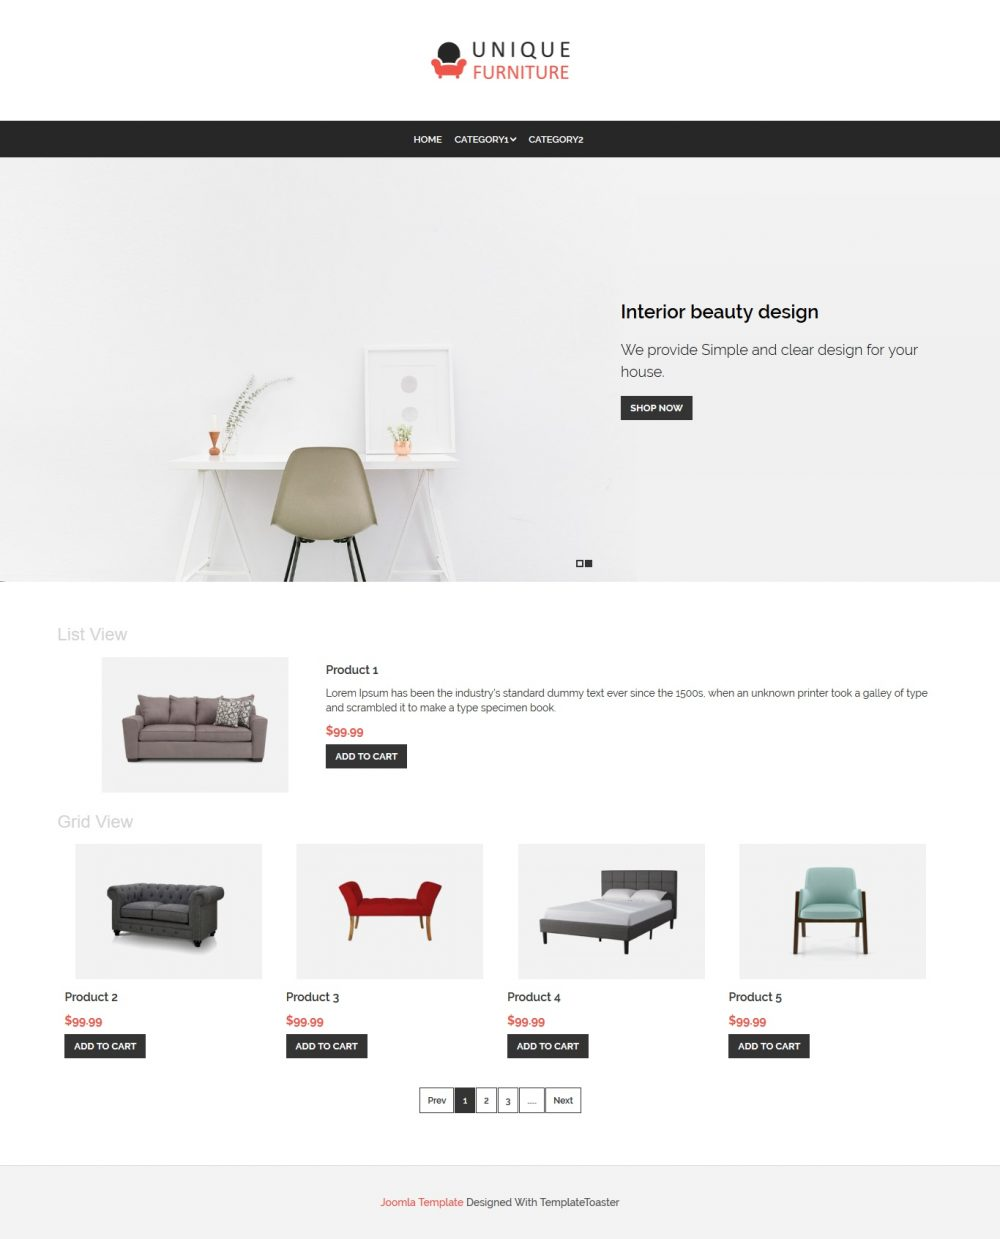 Unique Furniture Shop Virtuemart Template